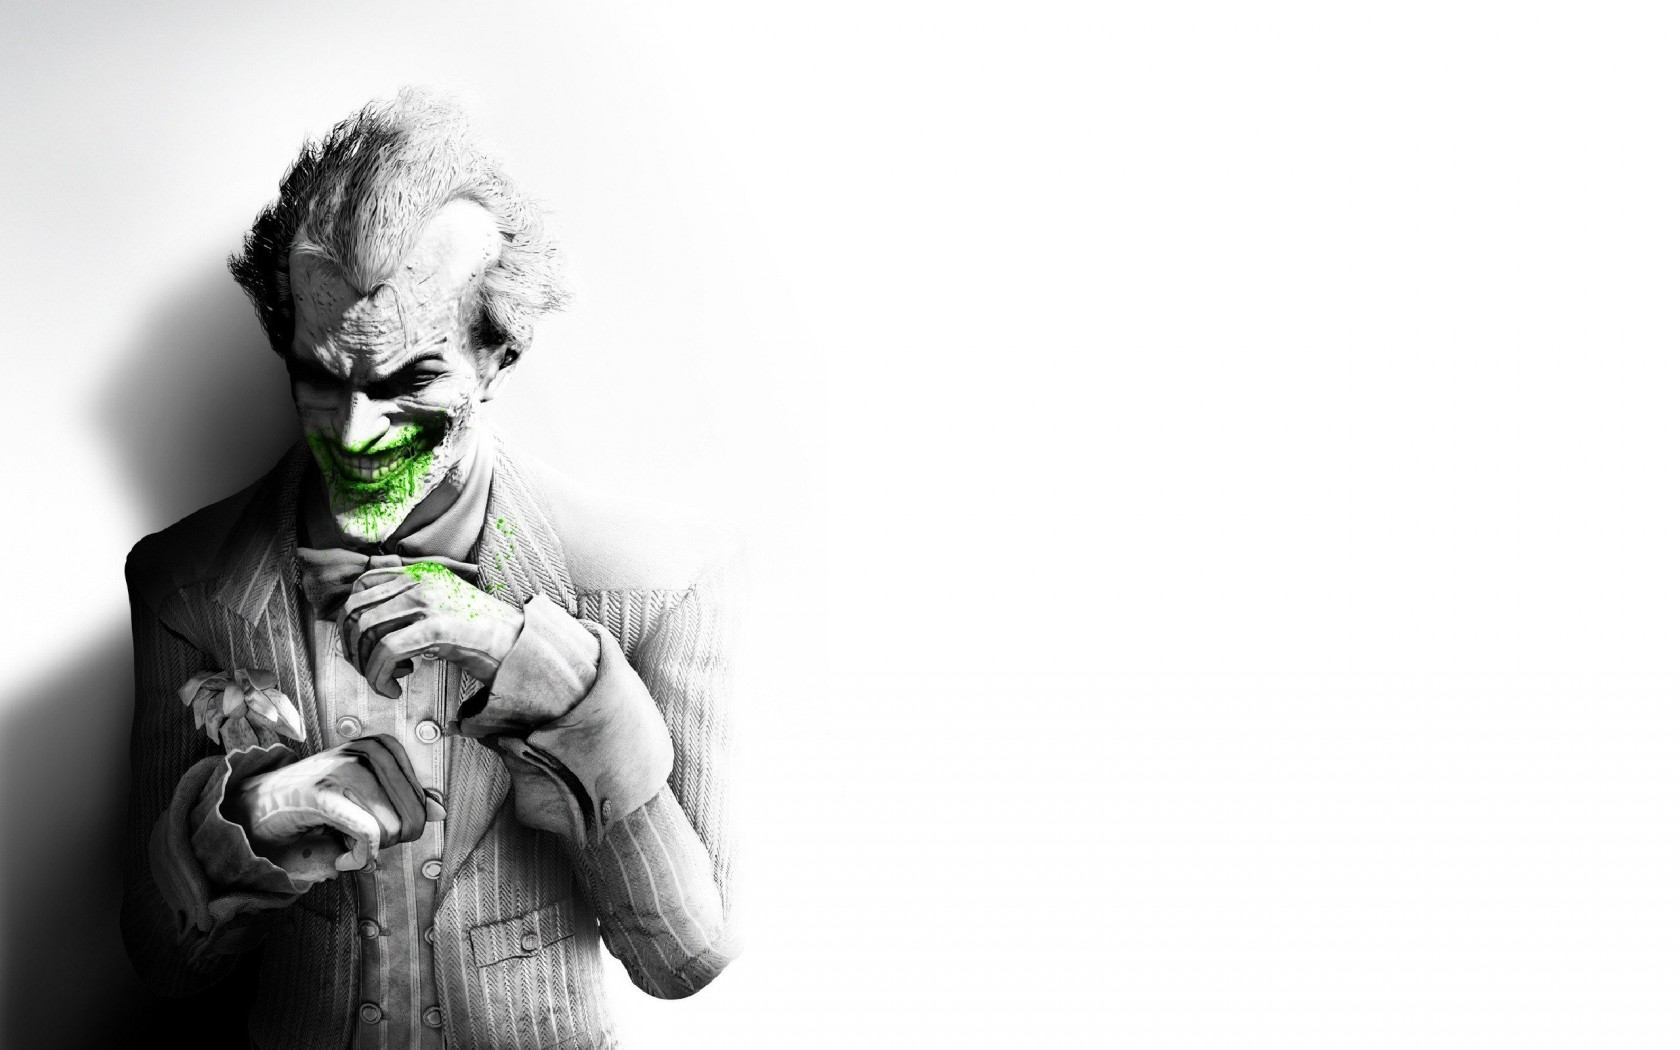 The Joker, Batman Arkham City Wallpaper for Desktop 1680x1050